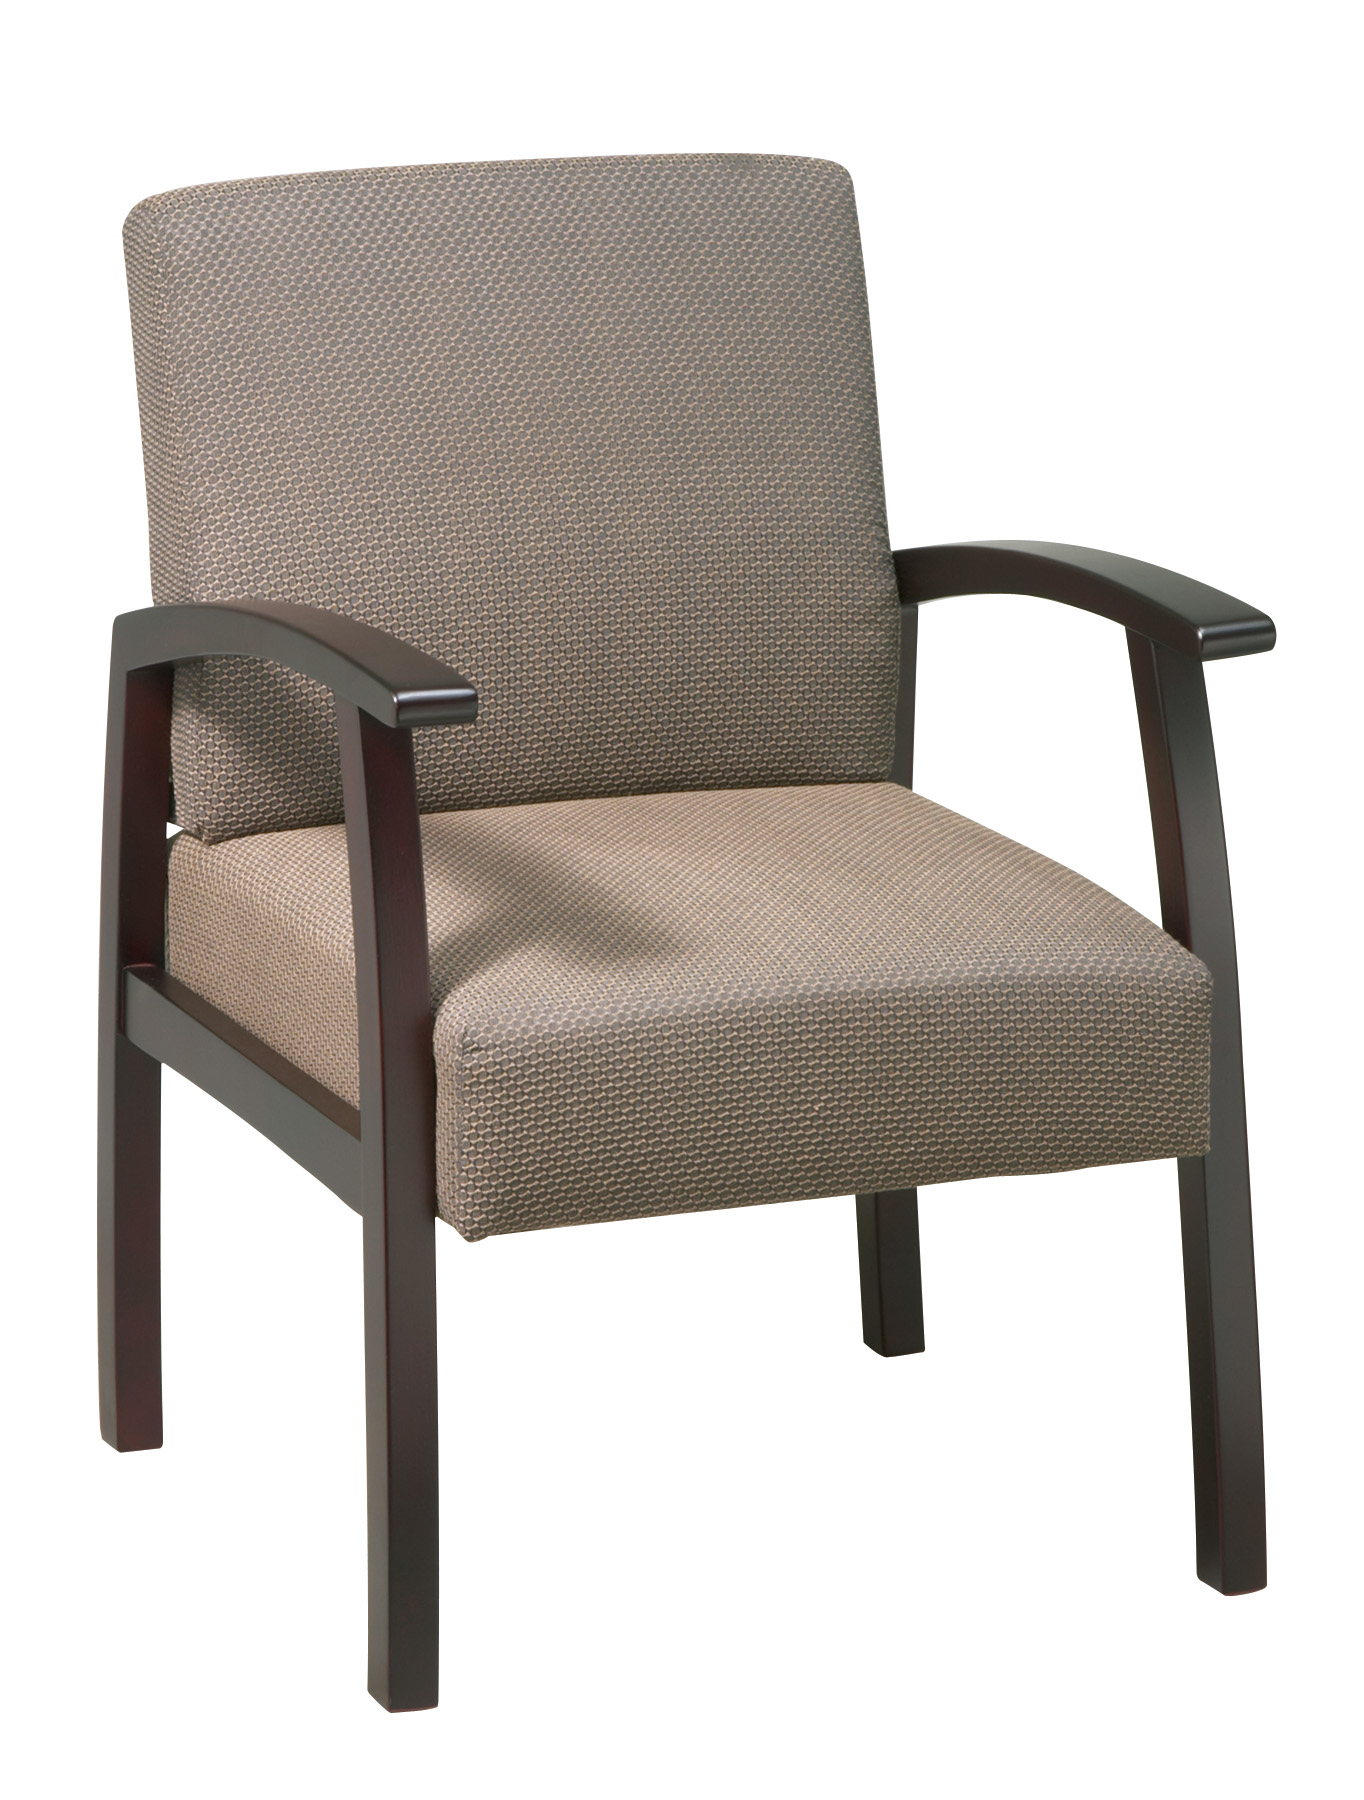 Guest Chair with Taupe Upholstery by OfficeStarProducts